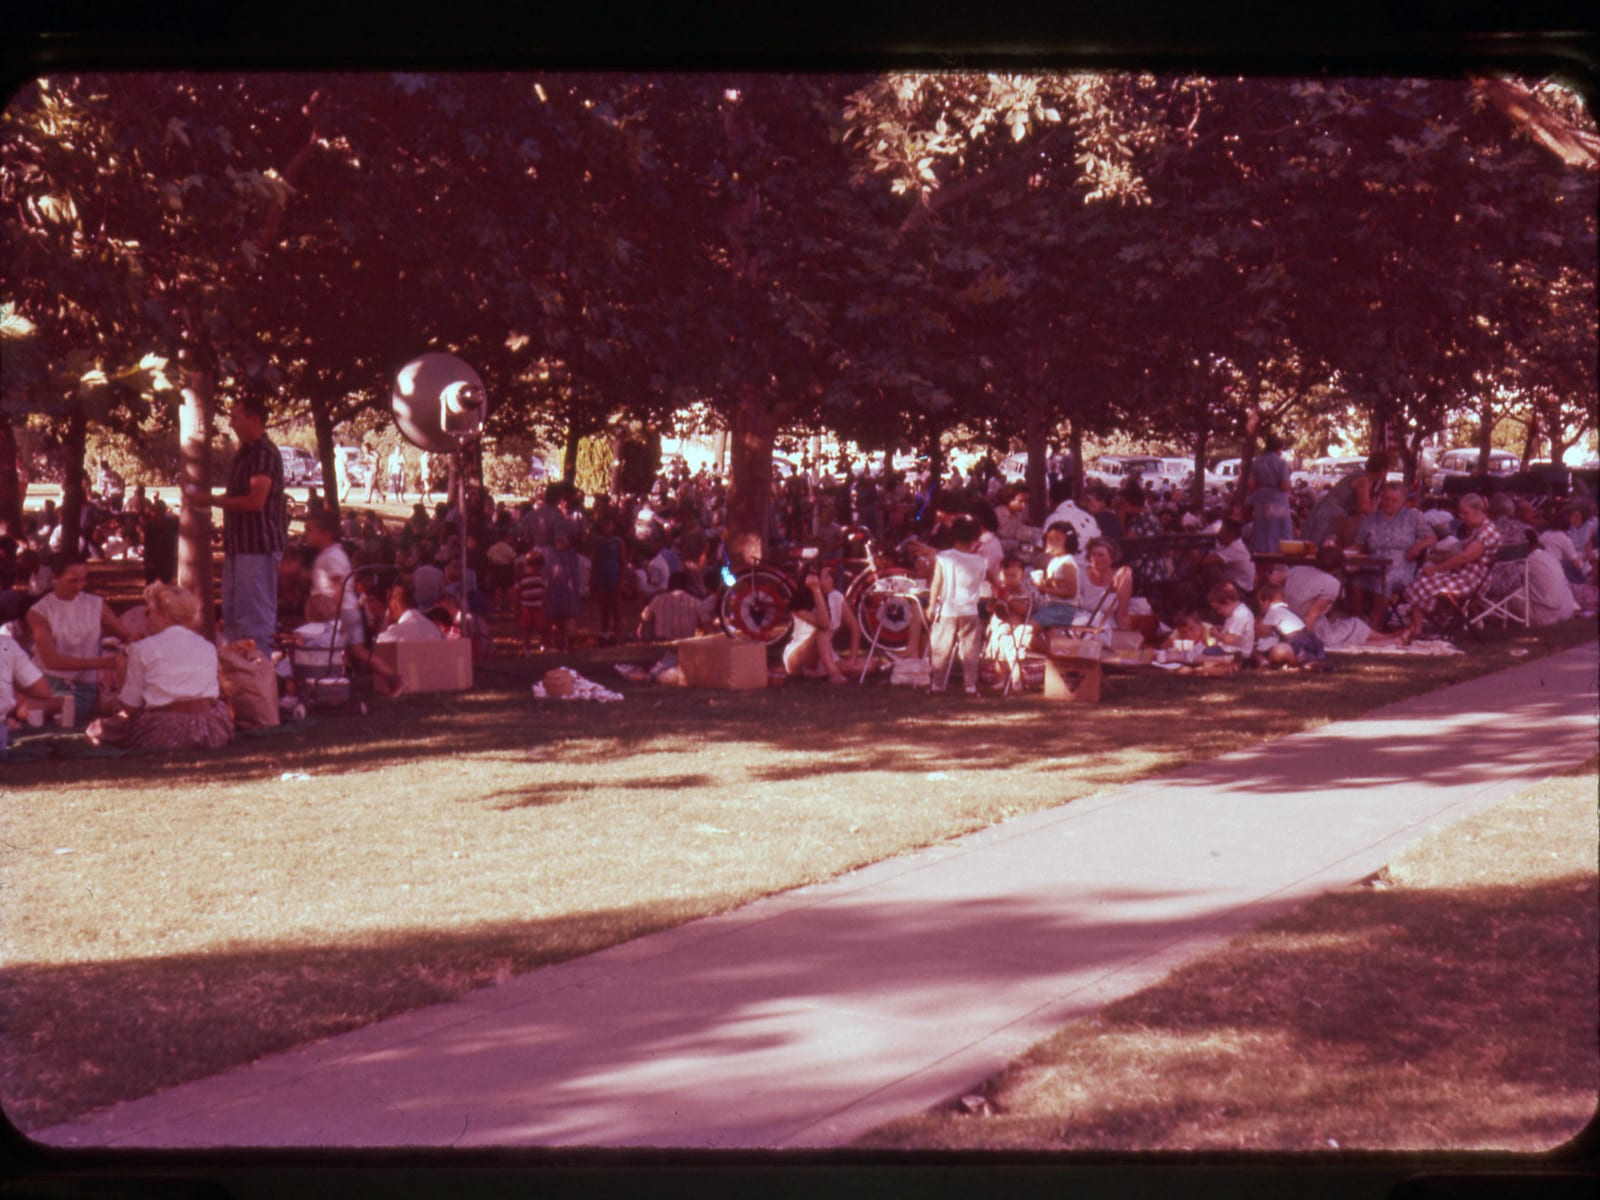 Davis Fourth of July Parade and Picnic, July 4, 1958